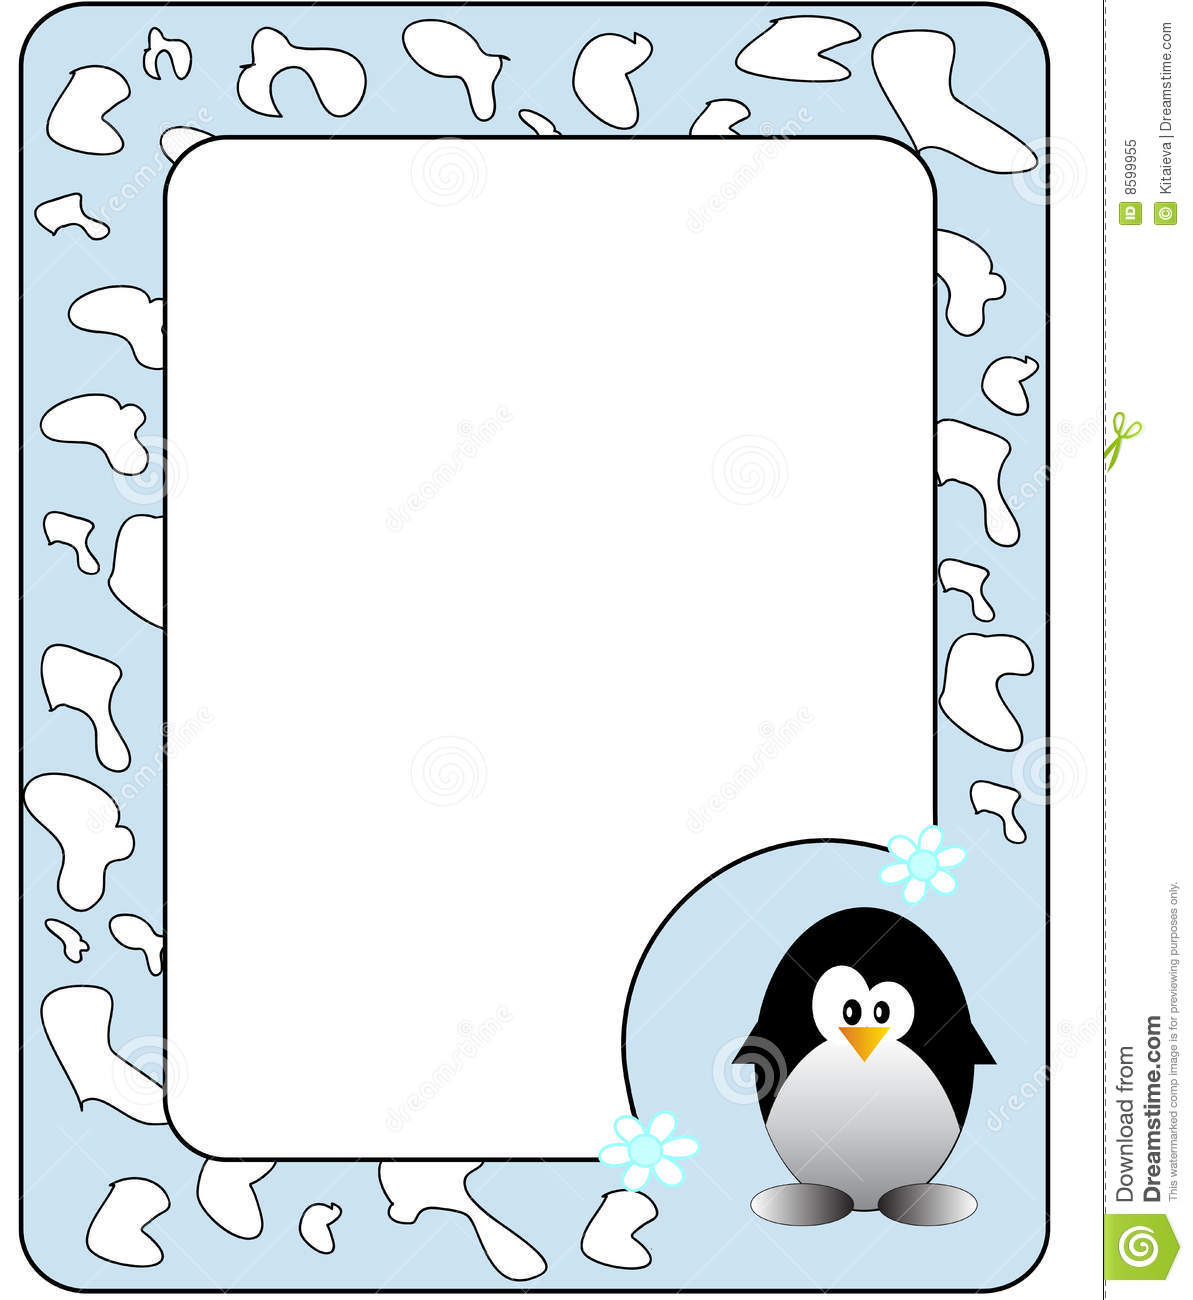 Frame With Penguin. Royalty Free Stock Photo - Image: 8599955